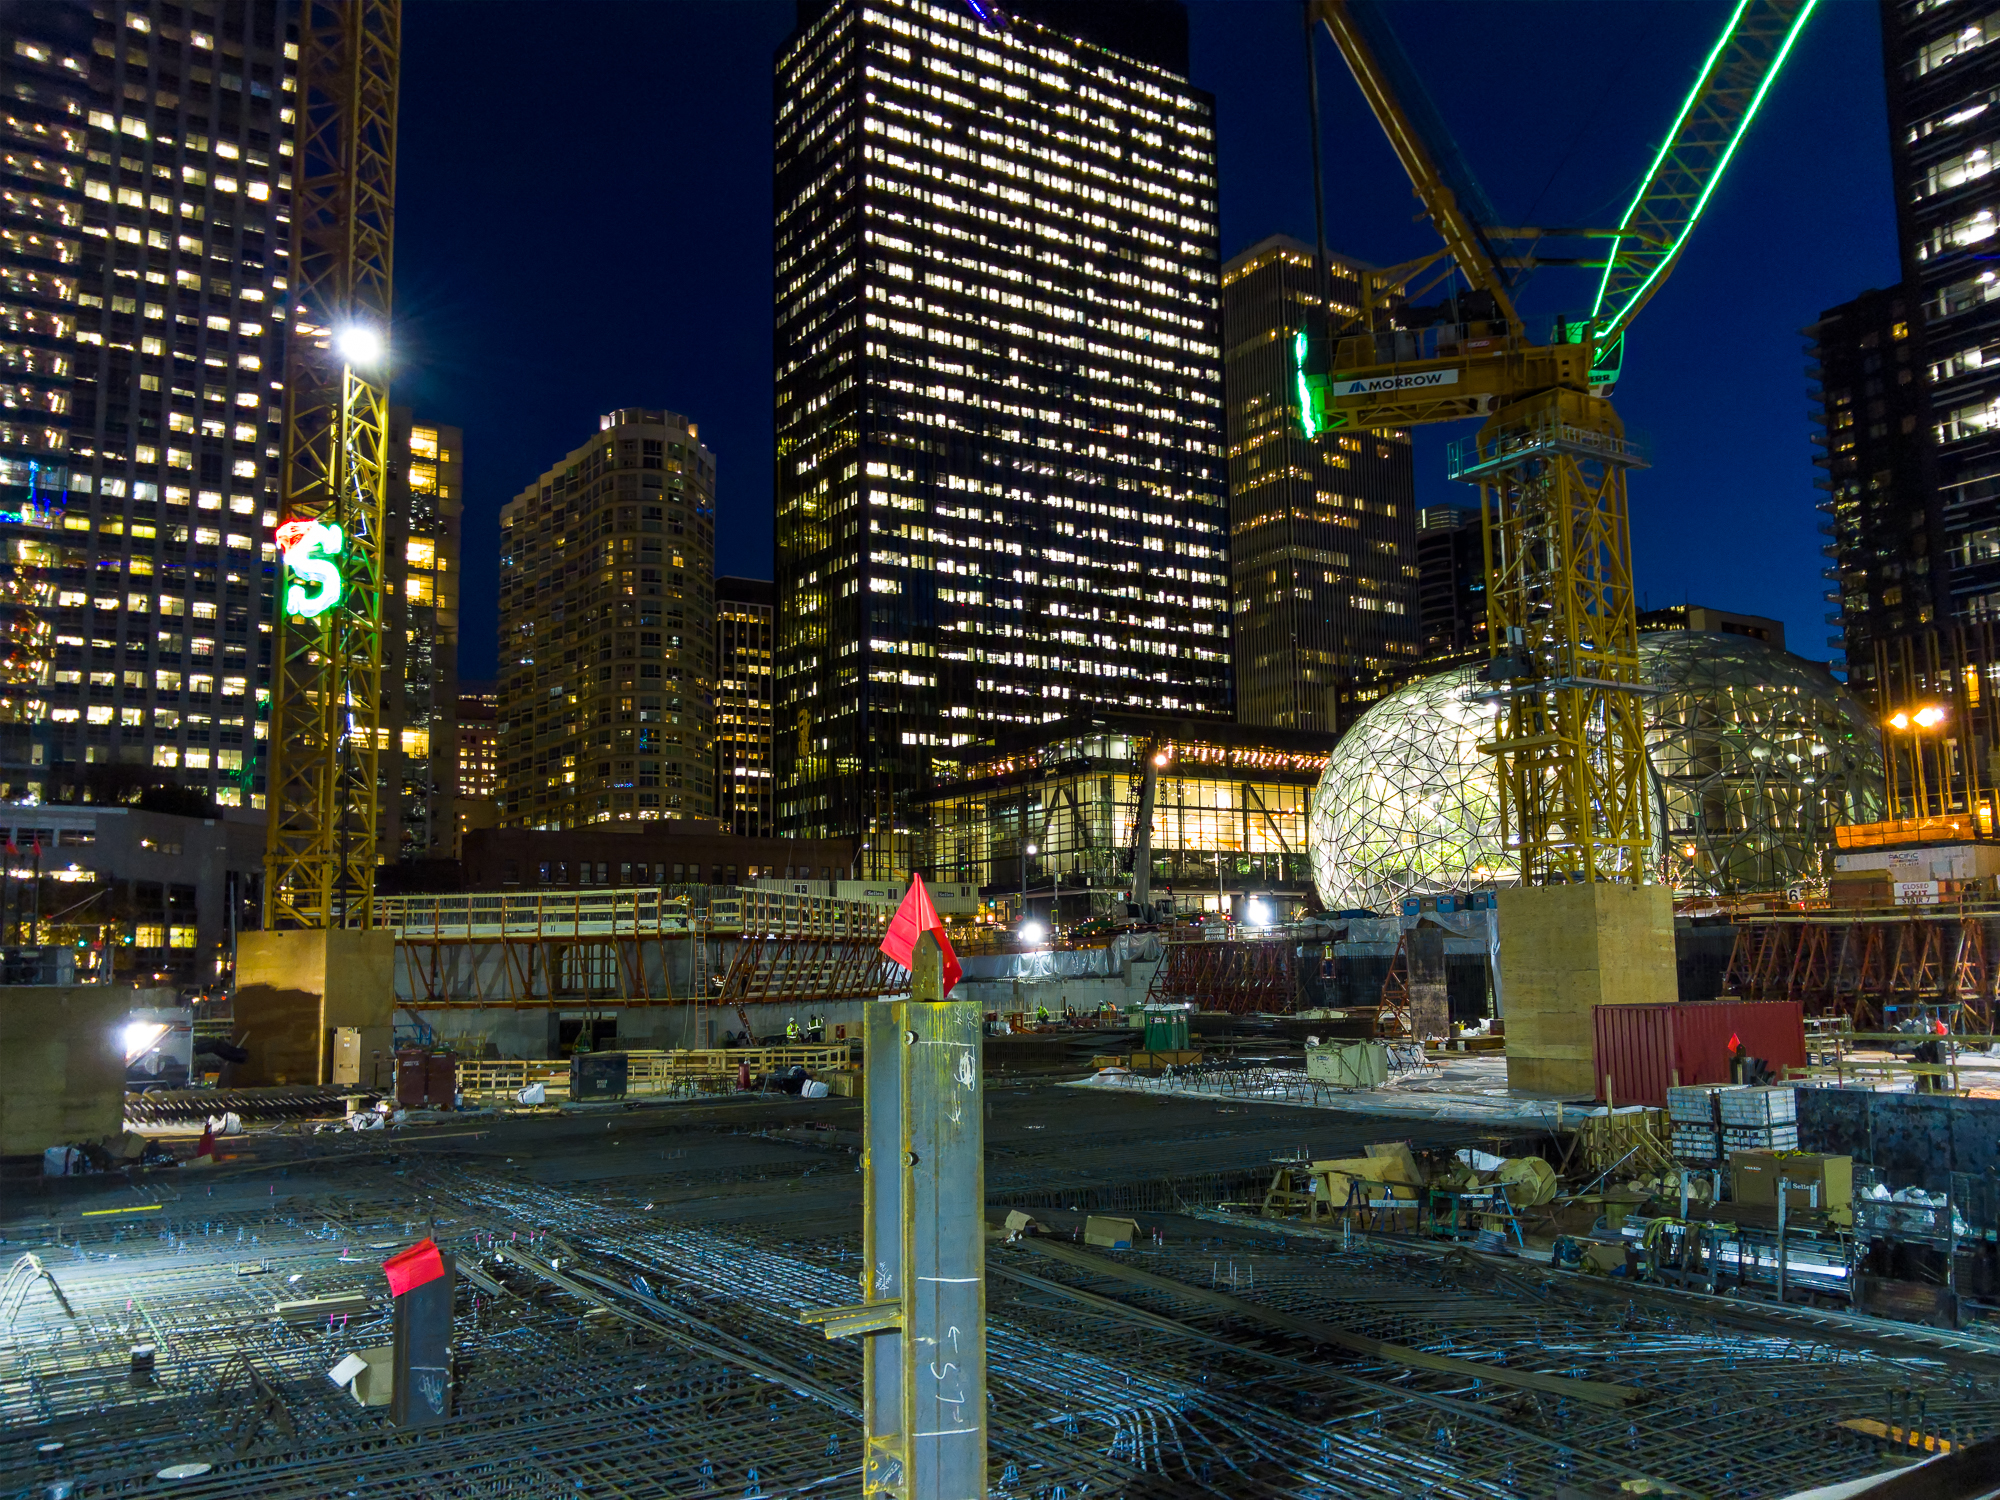 Construction Site in Seattle with the L16